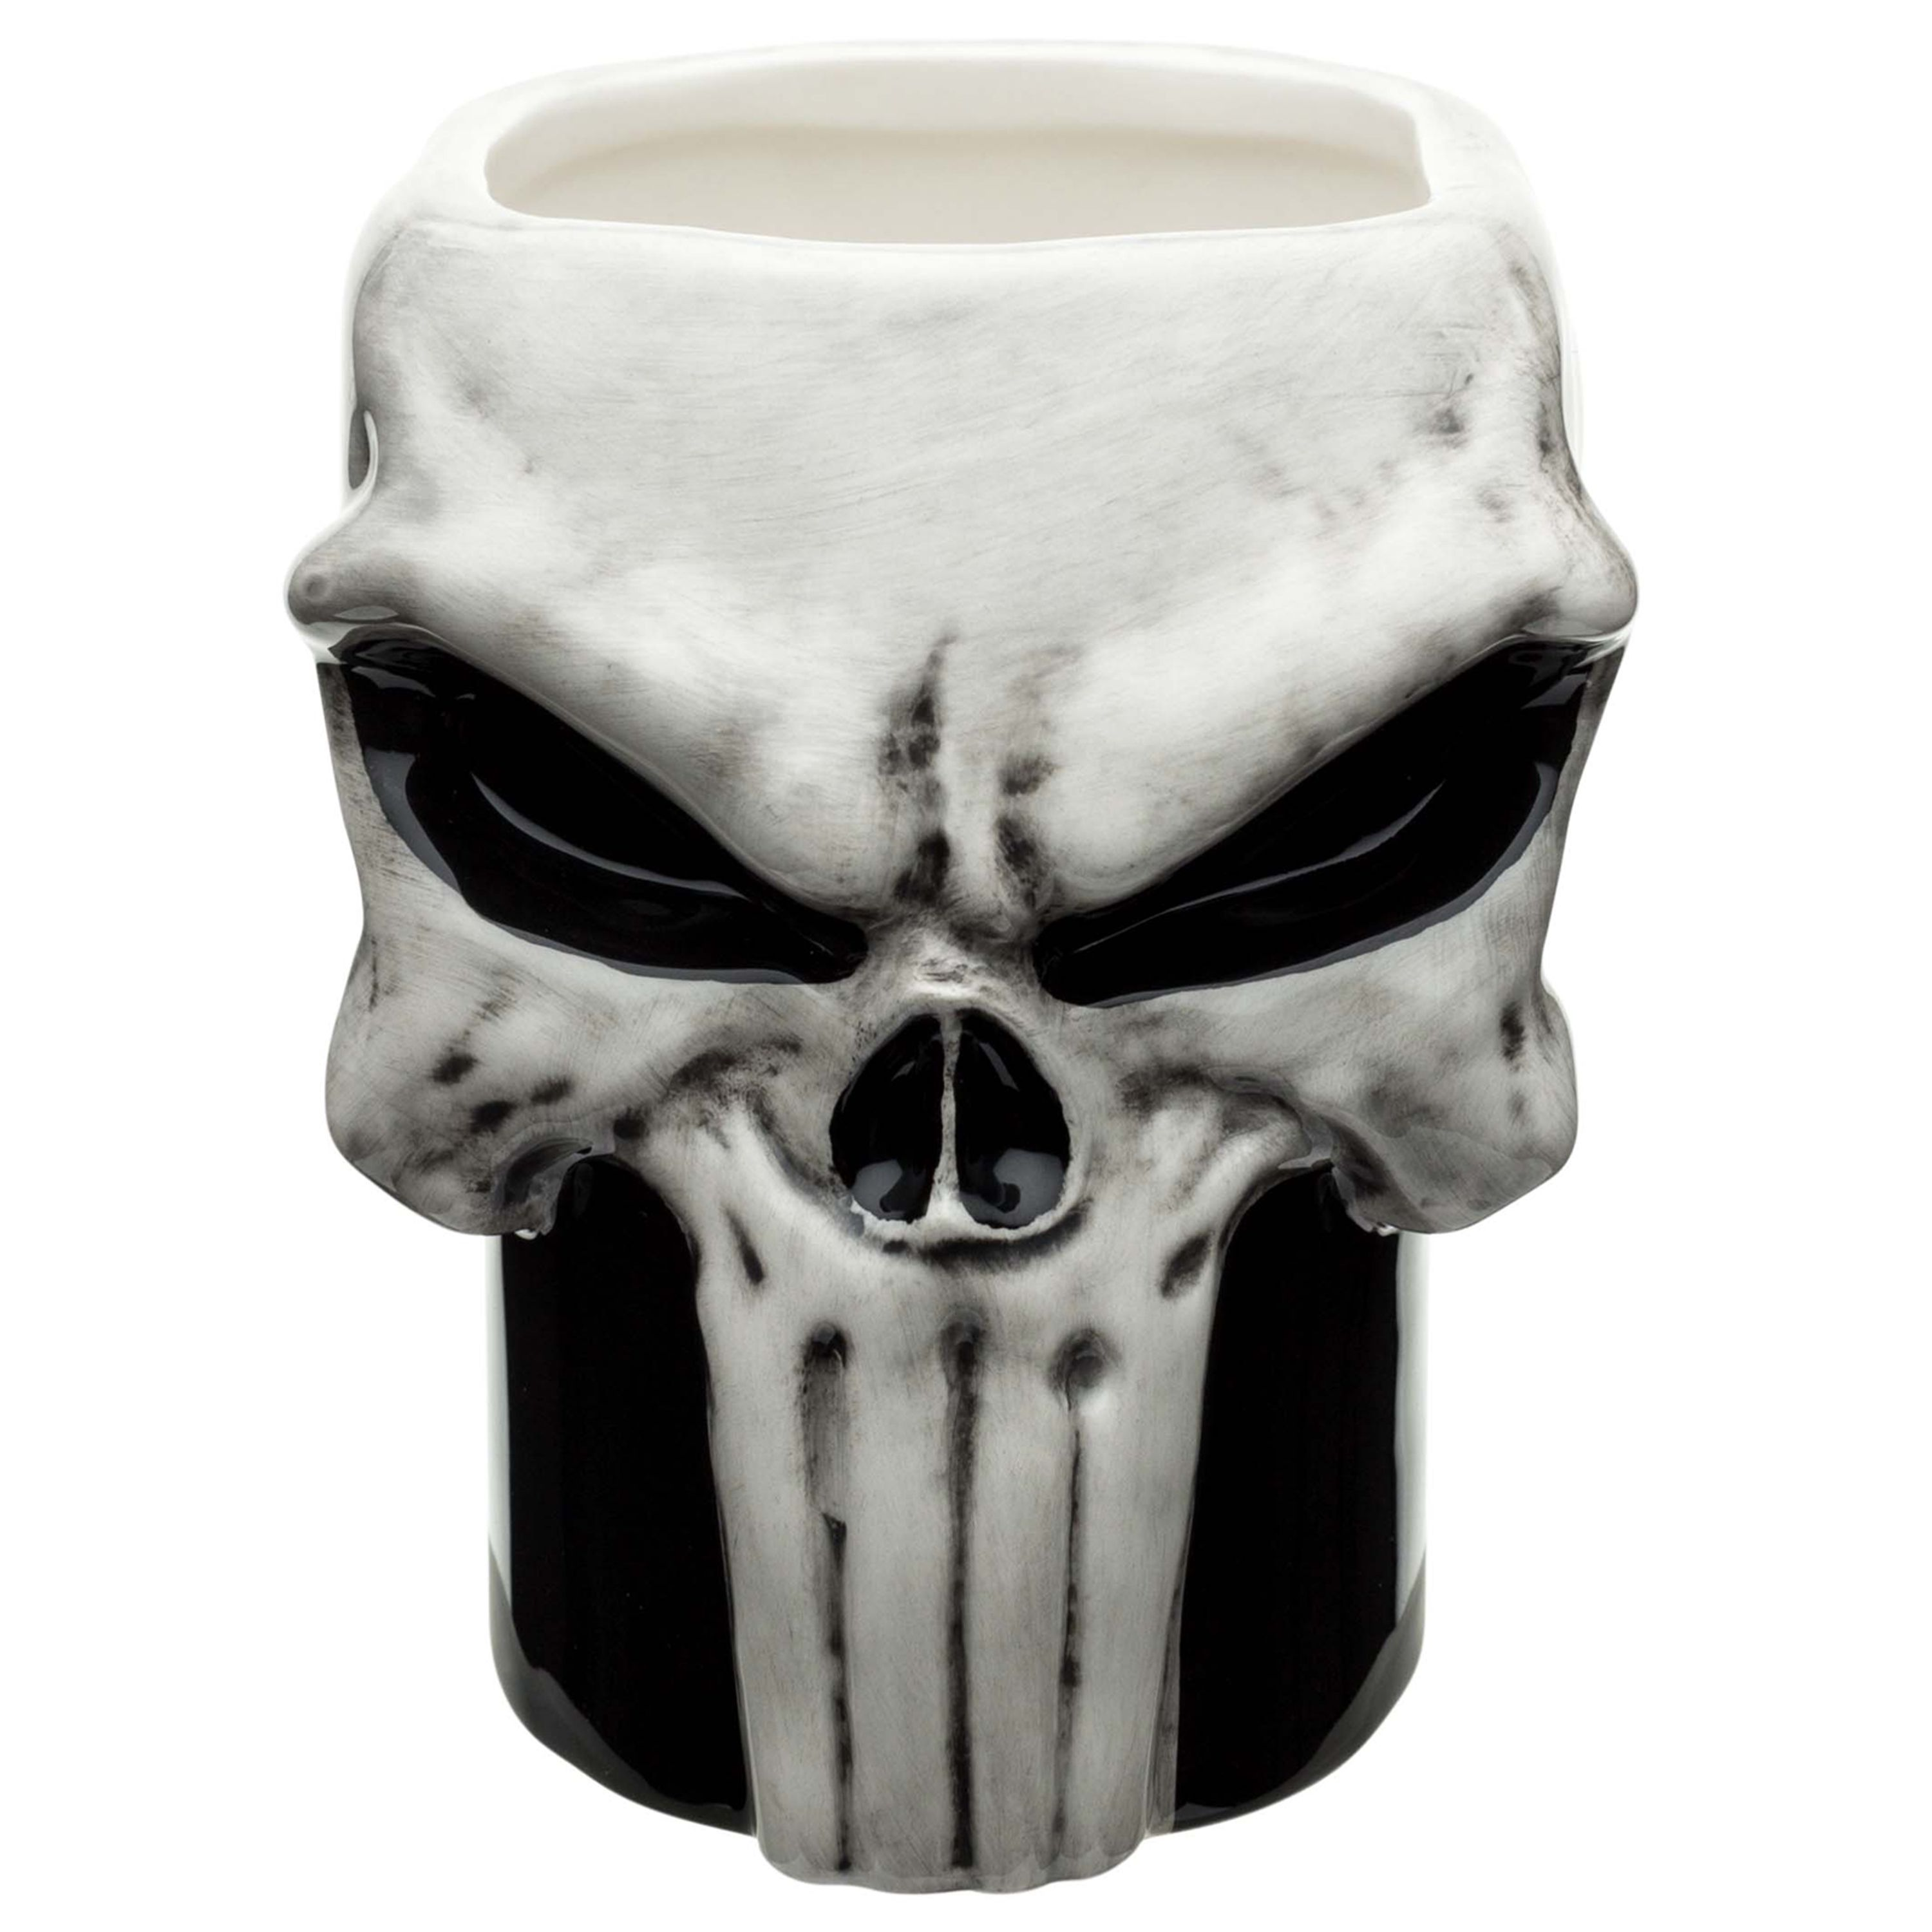 70fca2b2e72 Marvel Coffee Mugs - The Punisher by Zak!, Black | Products ...